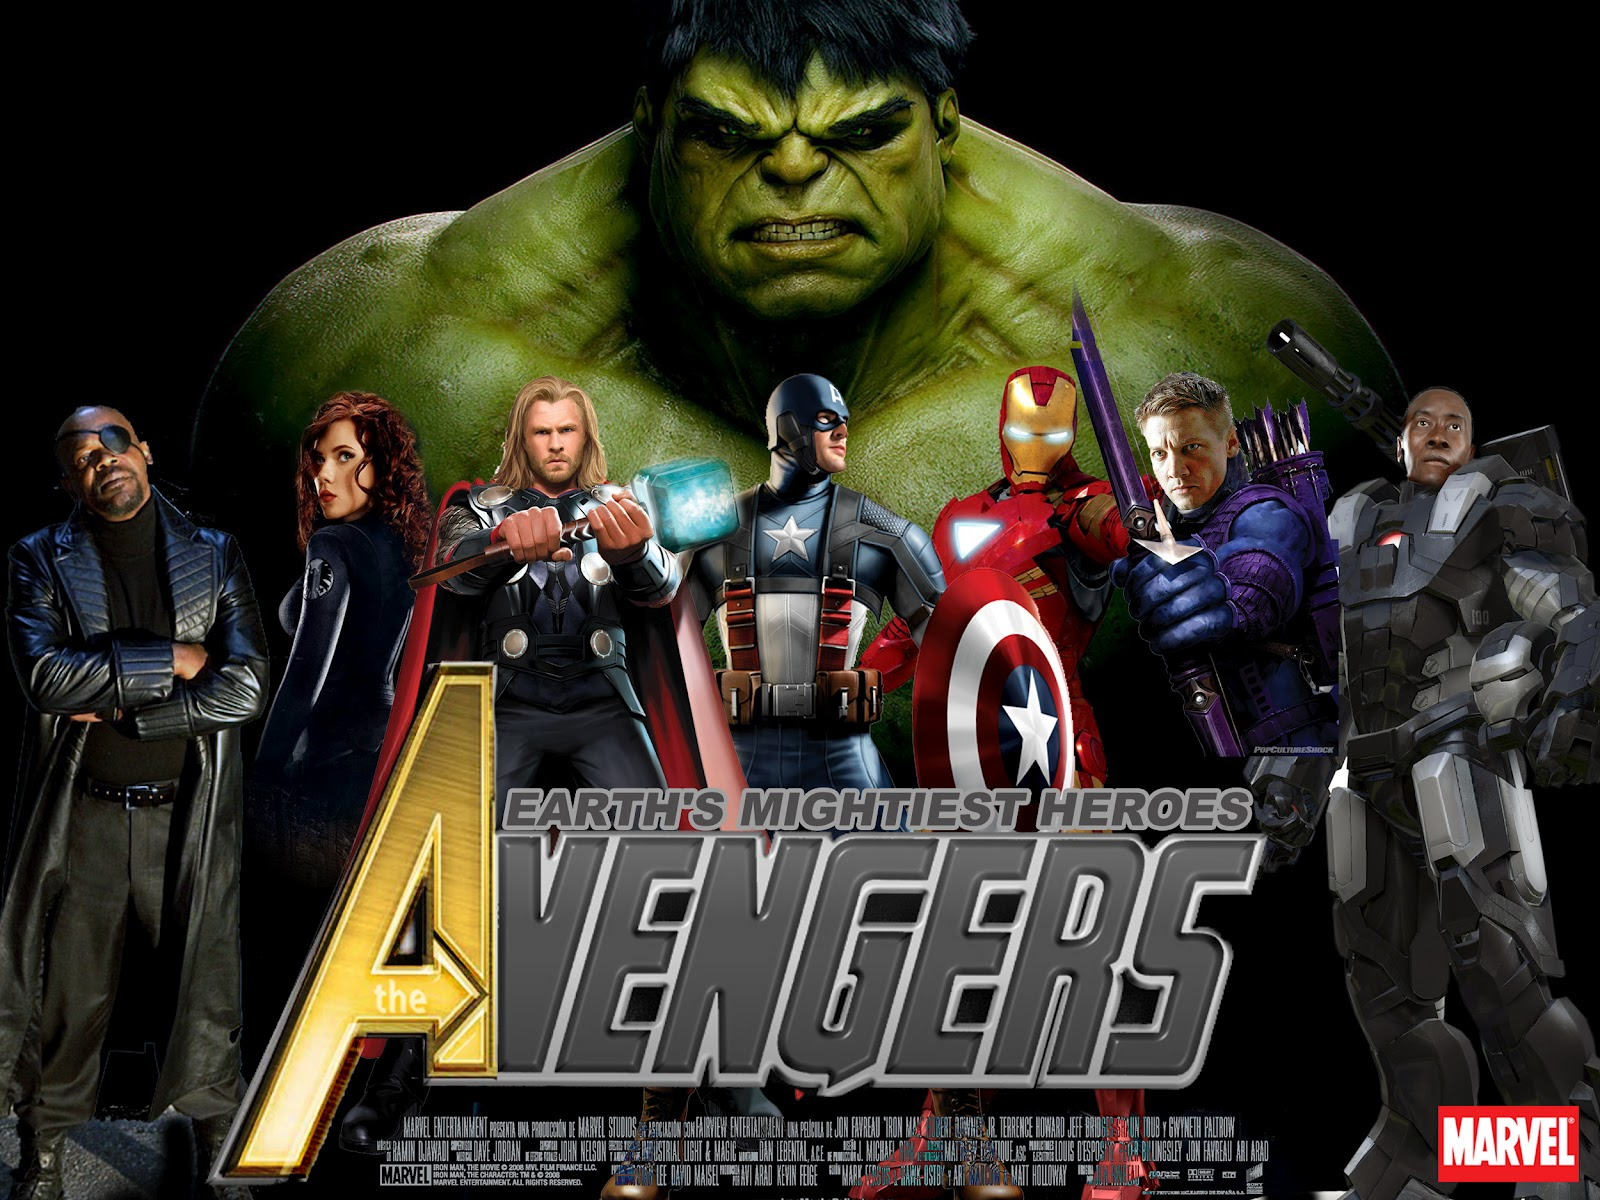 http://1.bp.blogspot.com/-DHaA00ESOoE/UCqg5BGUZwI/AAAAAAAAFnQ/UYl-E7eGfgo/s1600/Wallpaper_The_Avengers_Movie_fondosdepantallawallpapershd.jpg